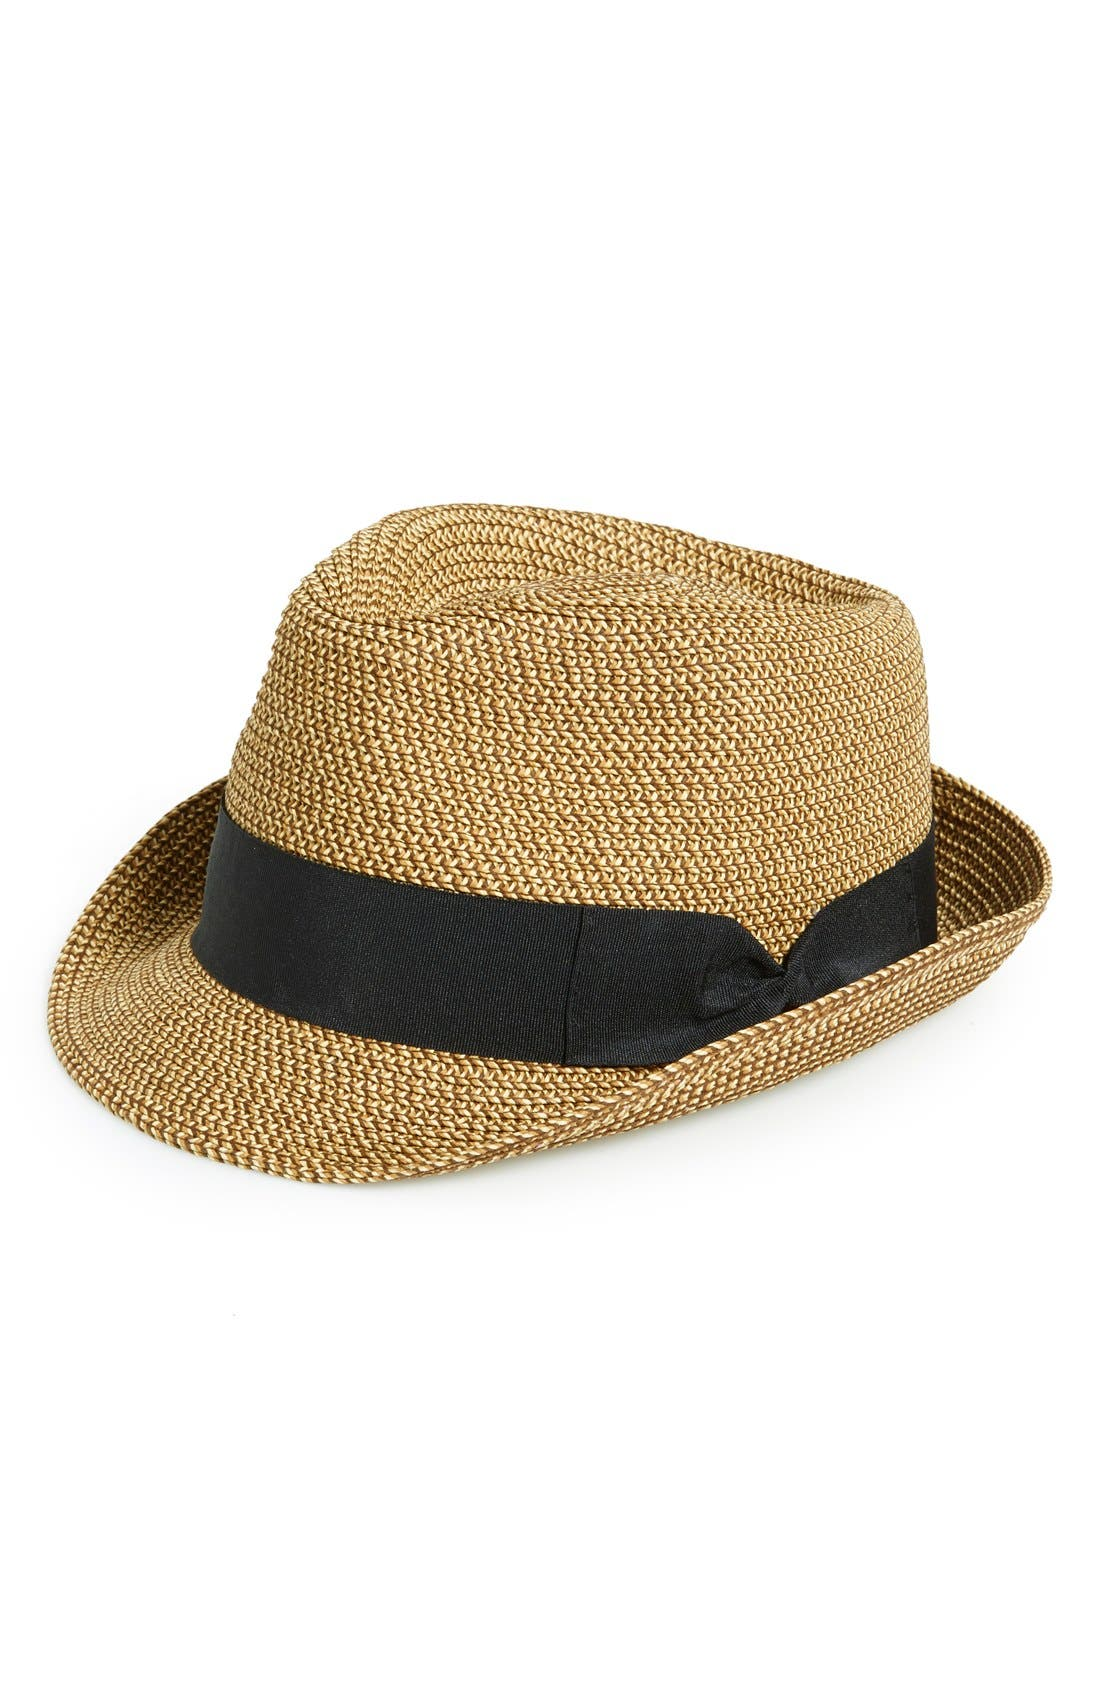 Alternate Image 1 Selected - BP. Straw Fedora